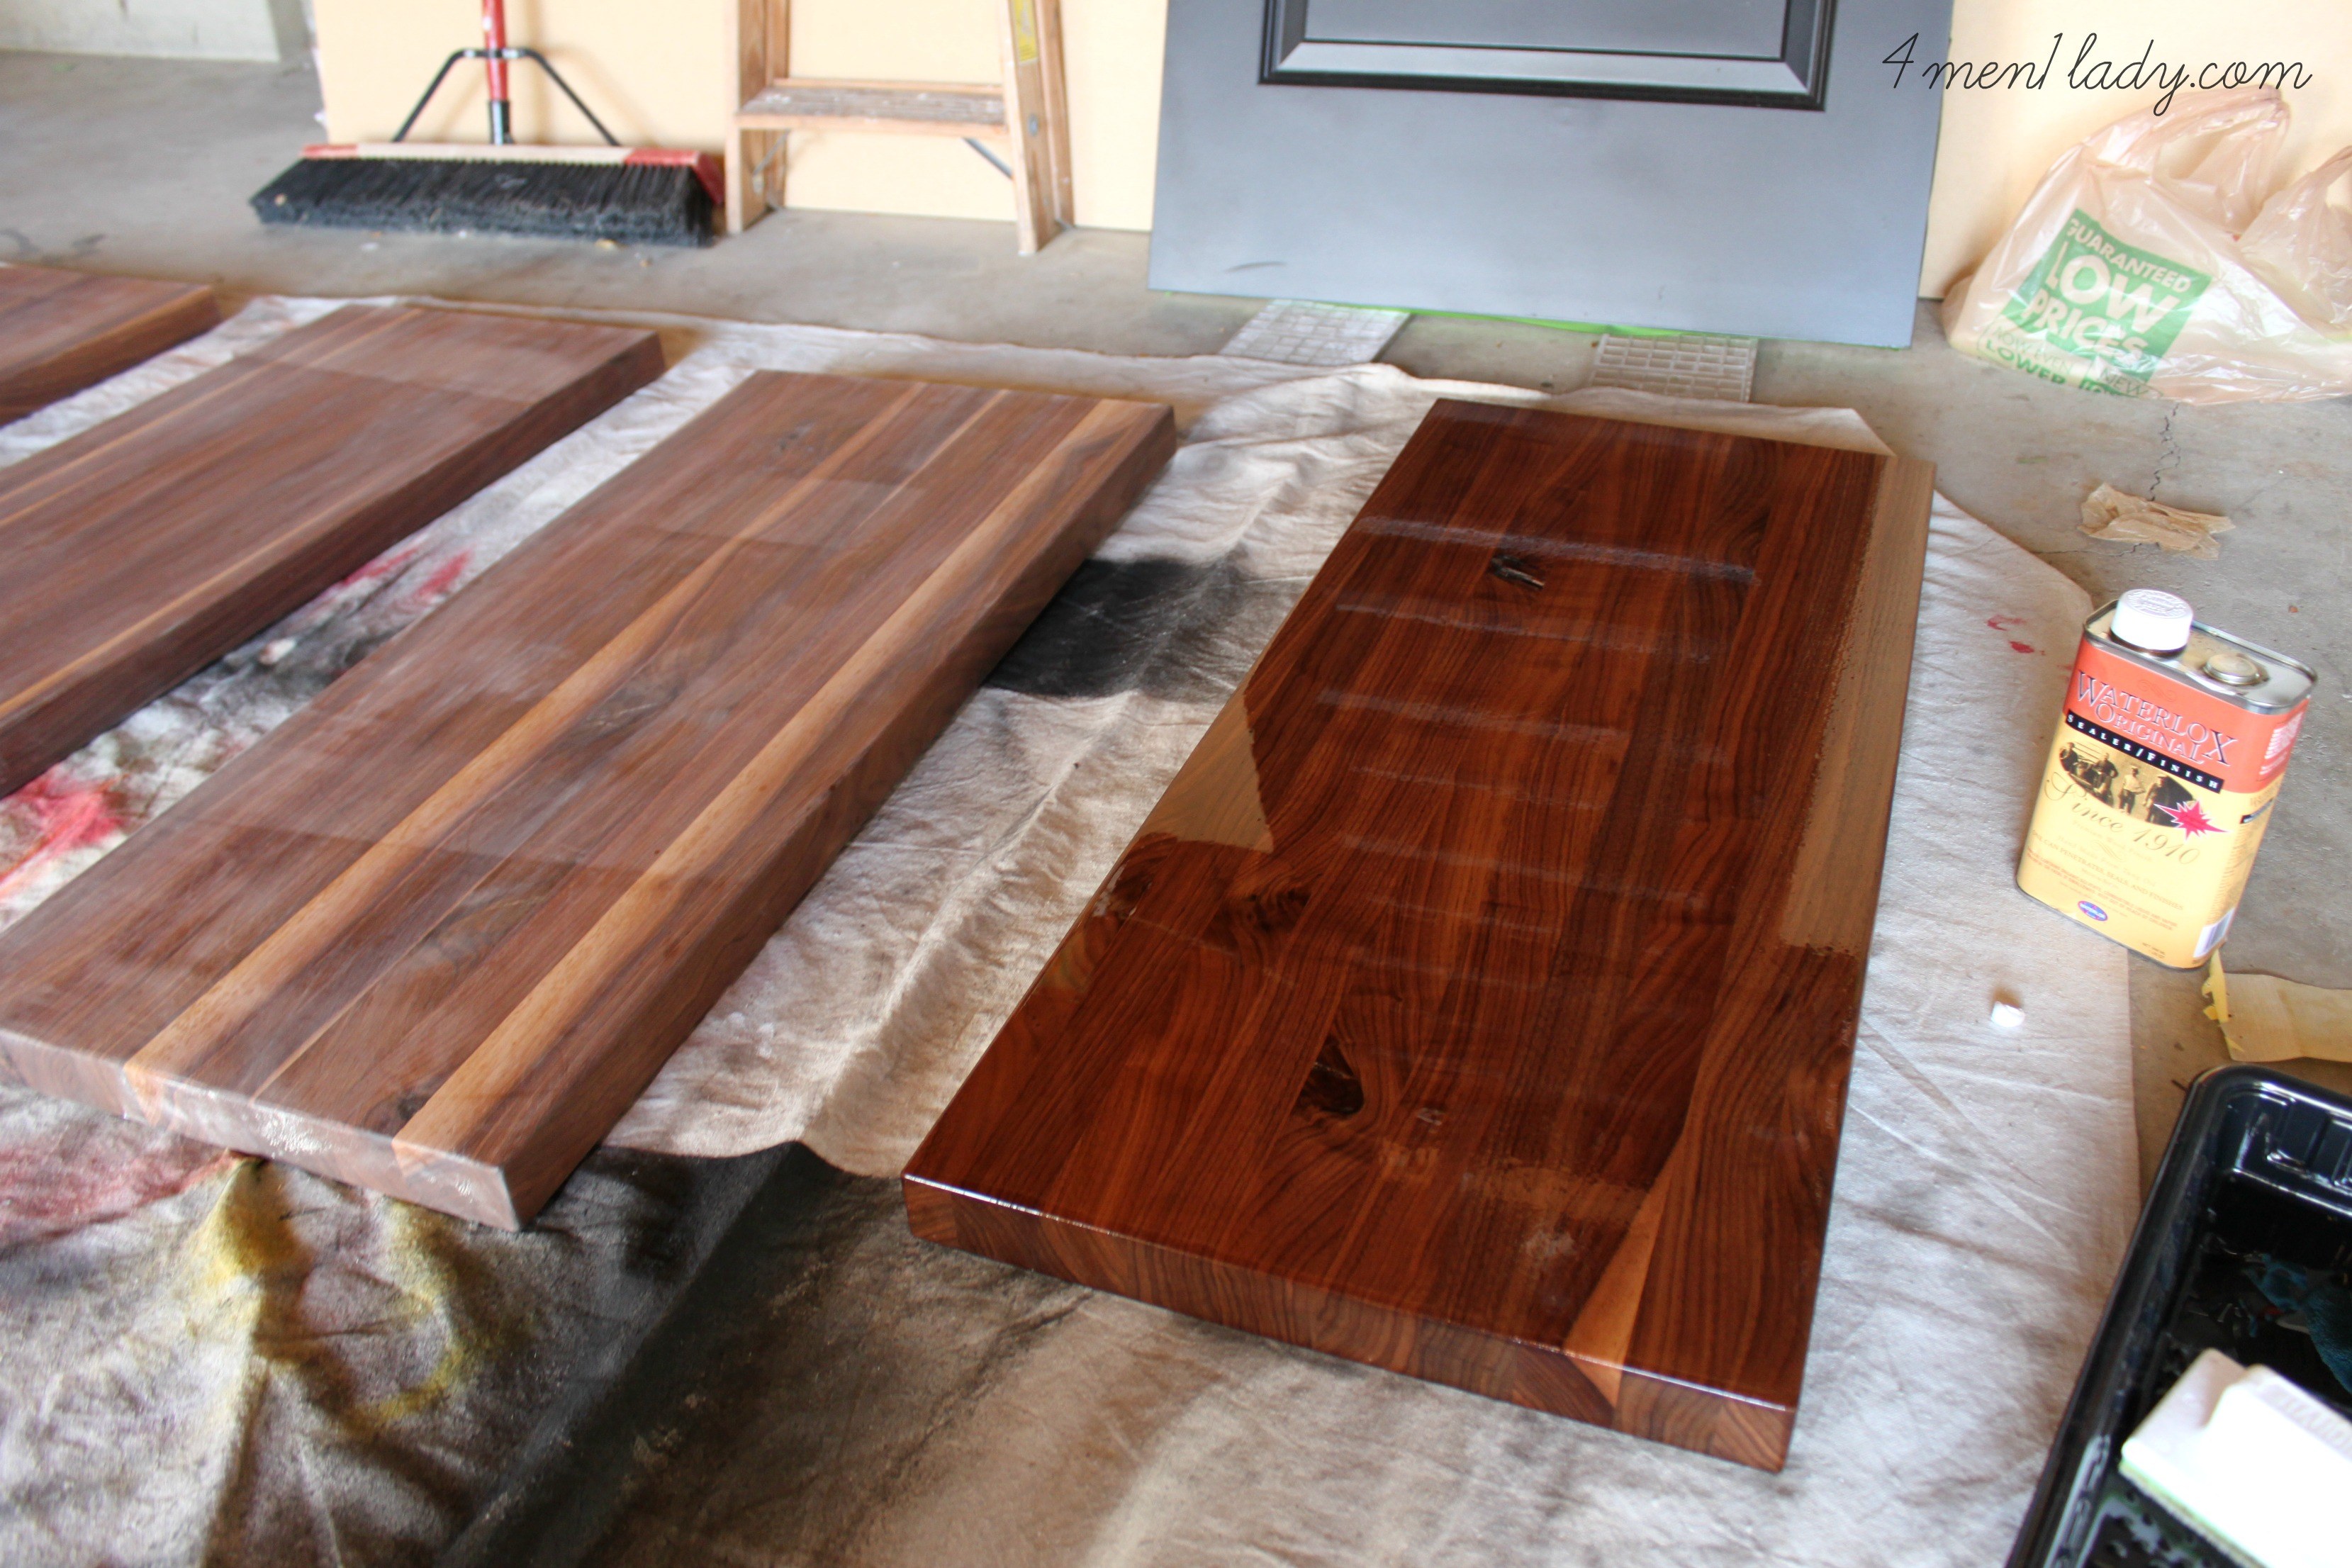 Tung Oil For Butcher Block Countertops Img 9734